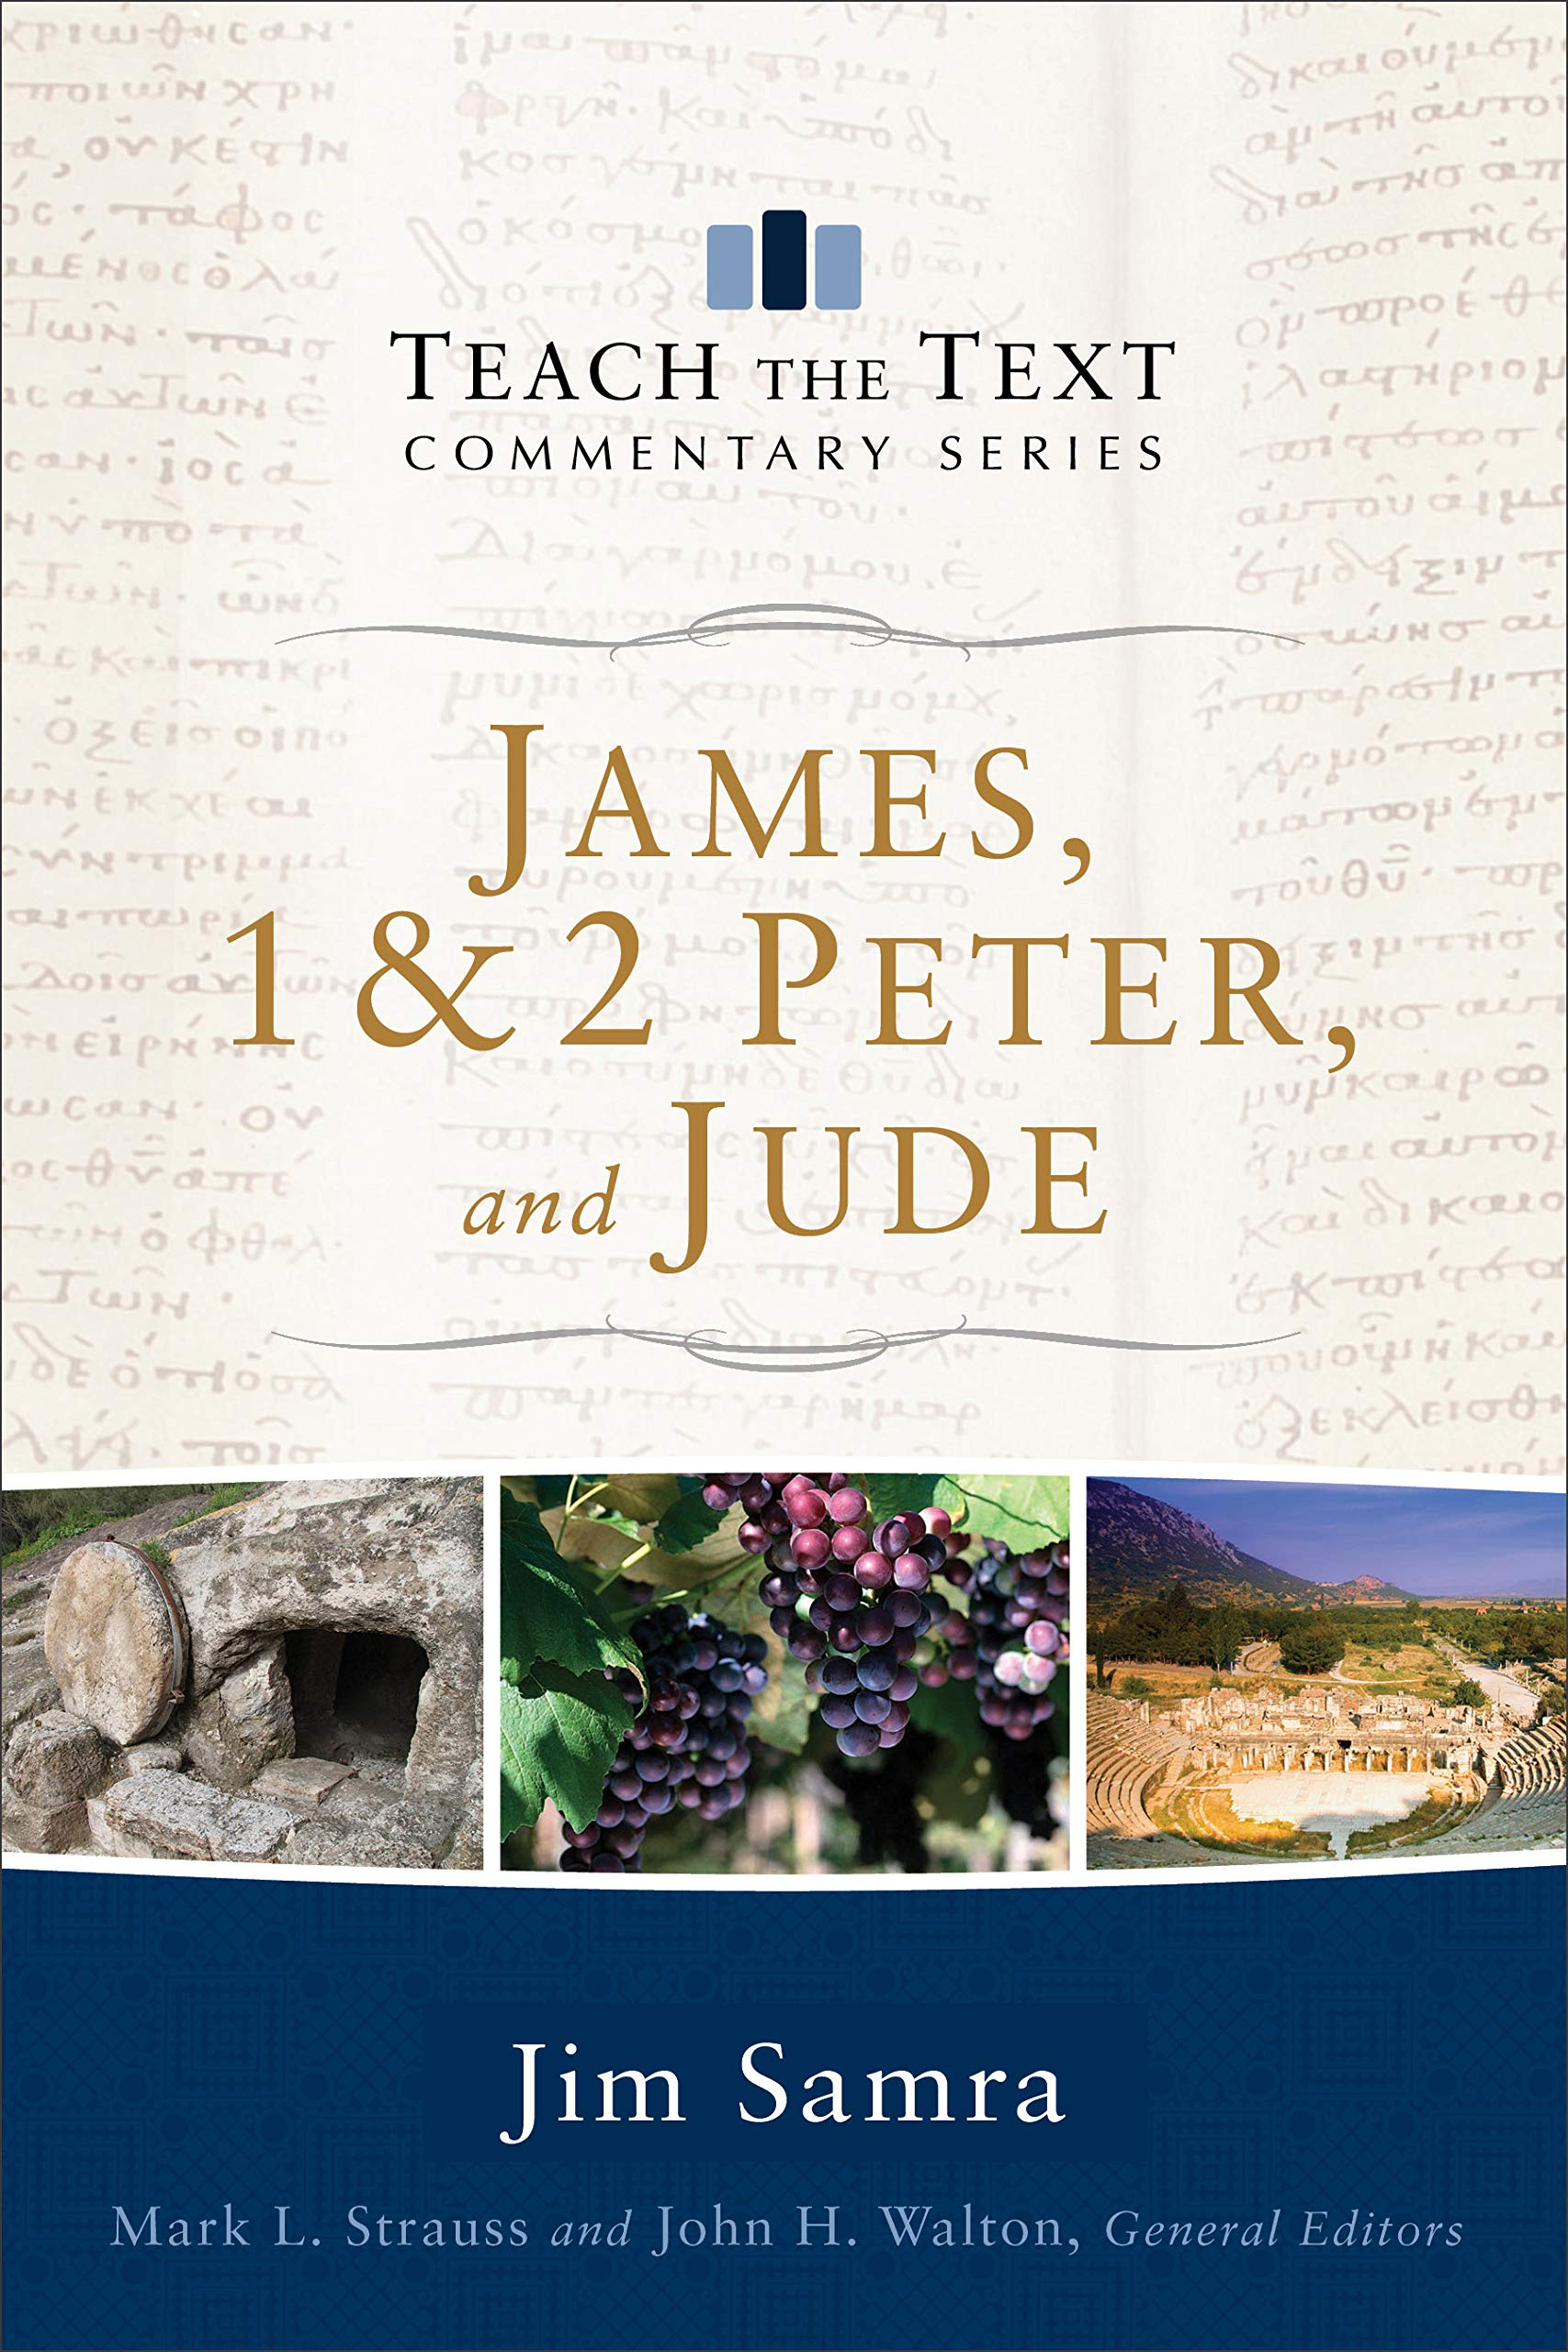 James, 1 & 2 Peter, and Jude (Teach the Text Commentary Series): Jim Samra,  Mark Strauss, John Walton: 9780801092404: Amazon.com: Books